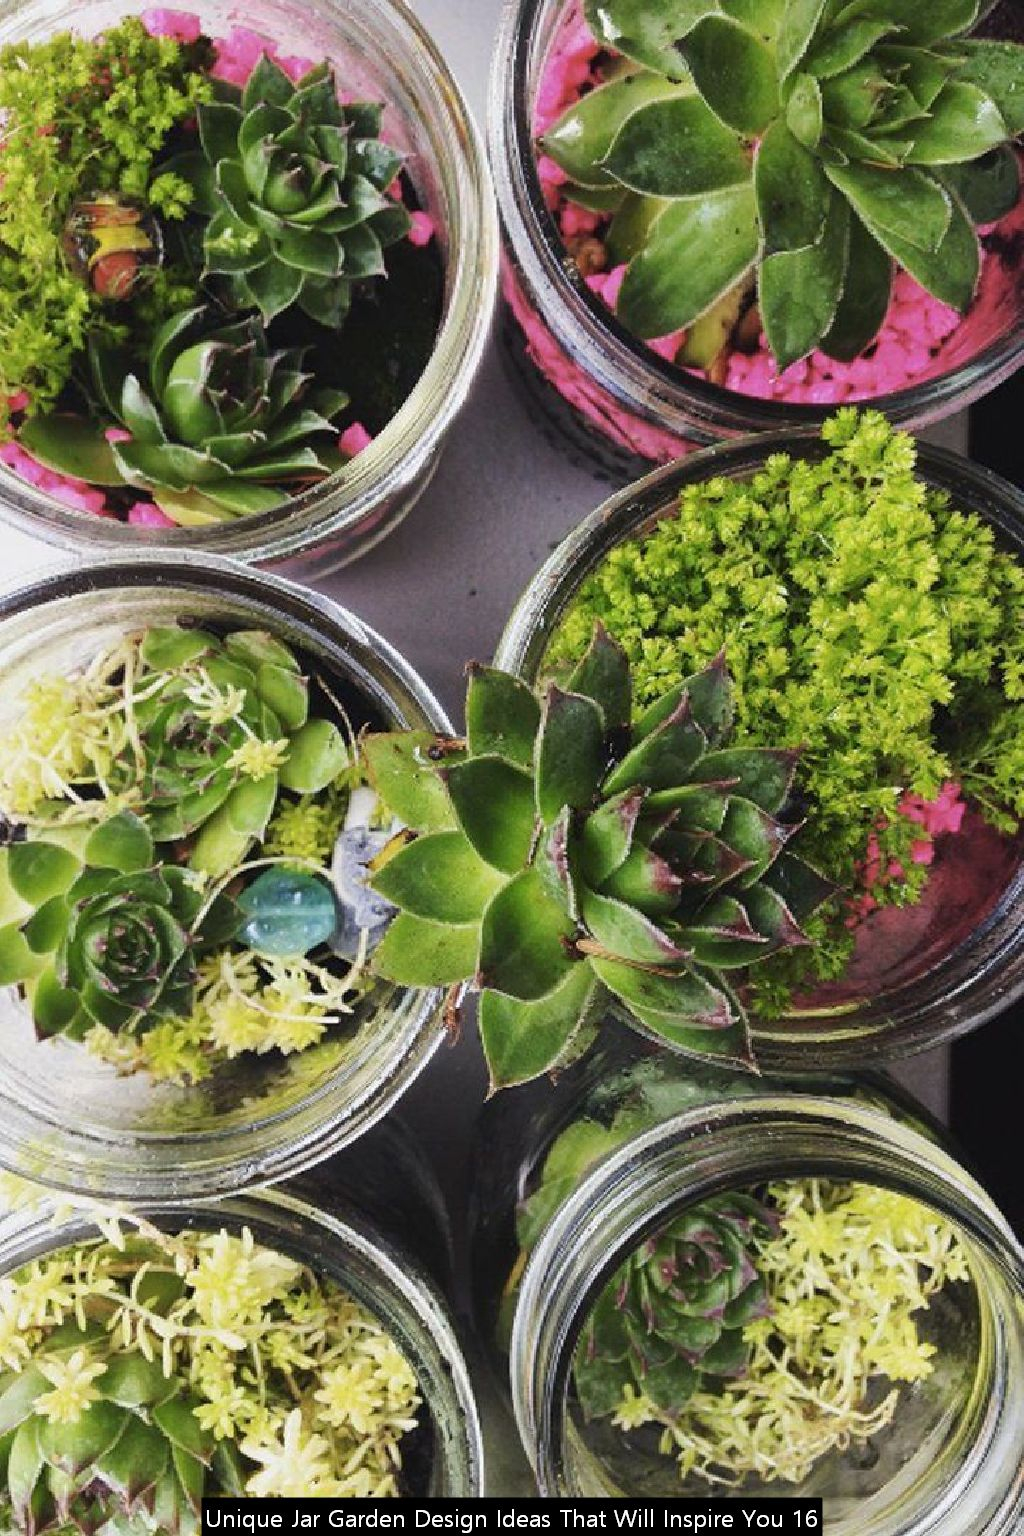 Unique Jar Garden Design Ideas That Will Inspire You 16